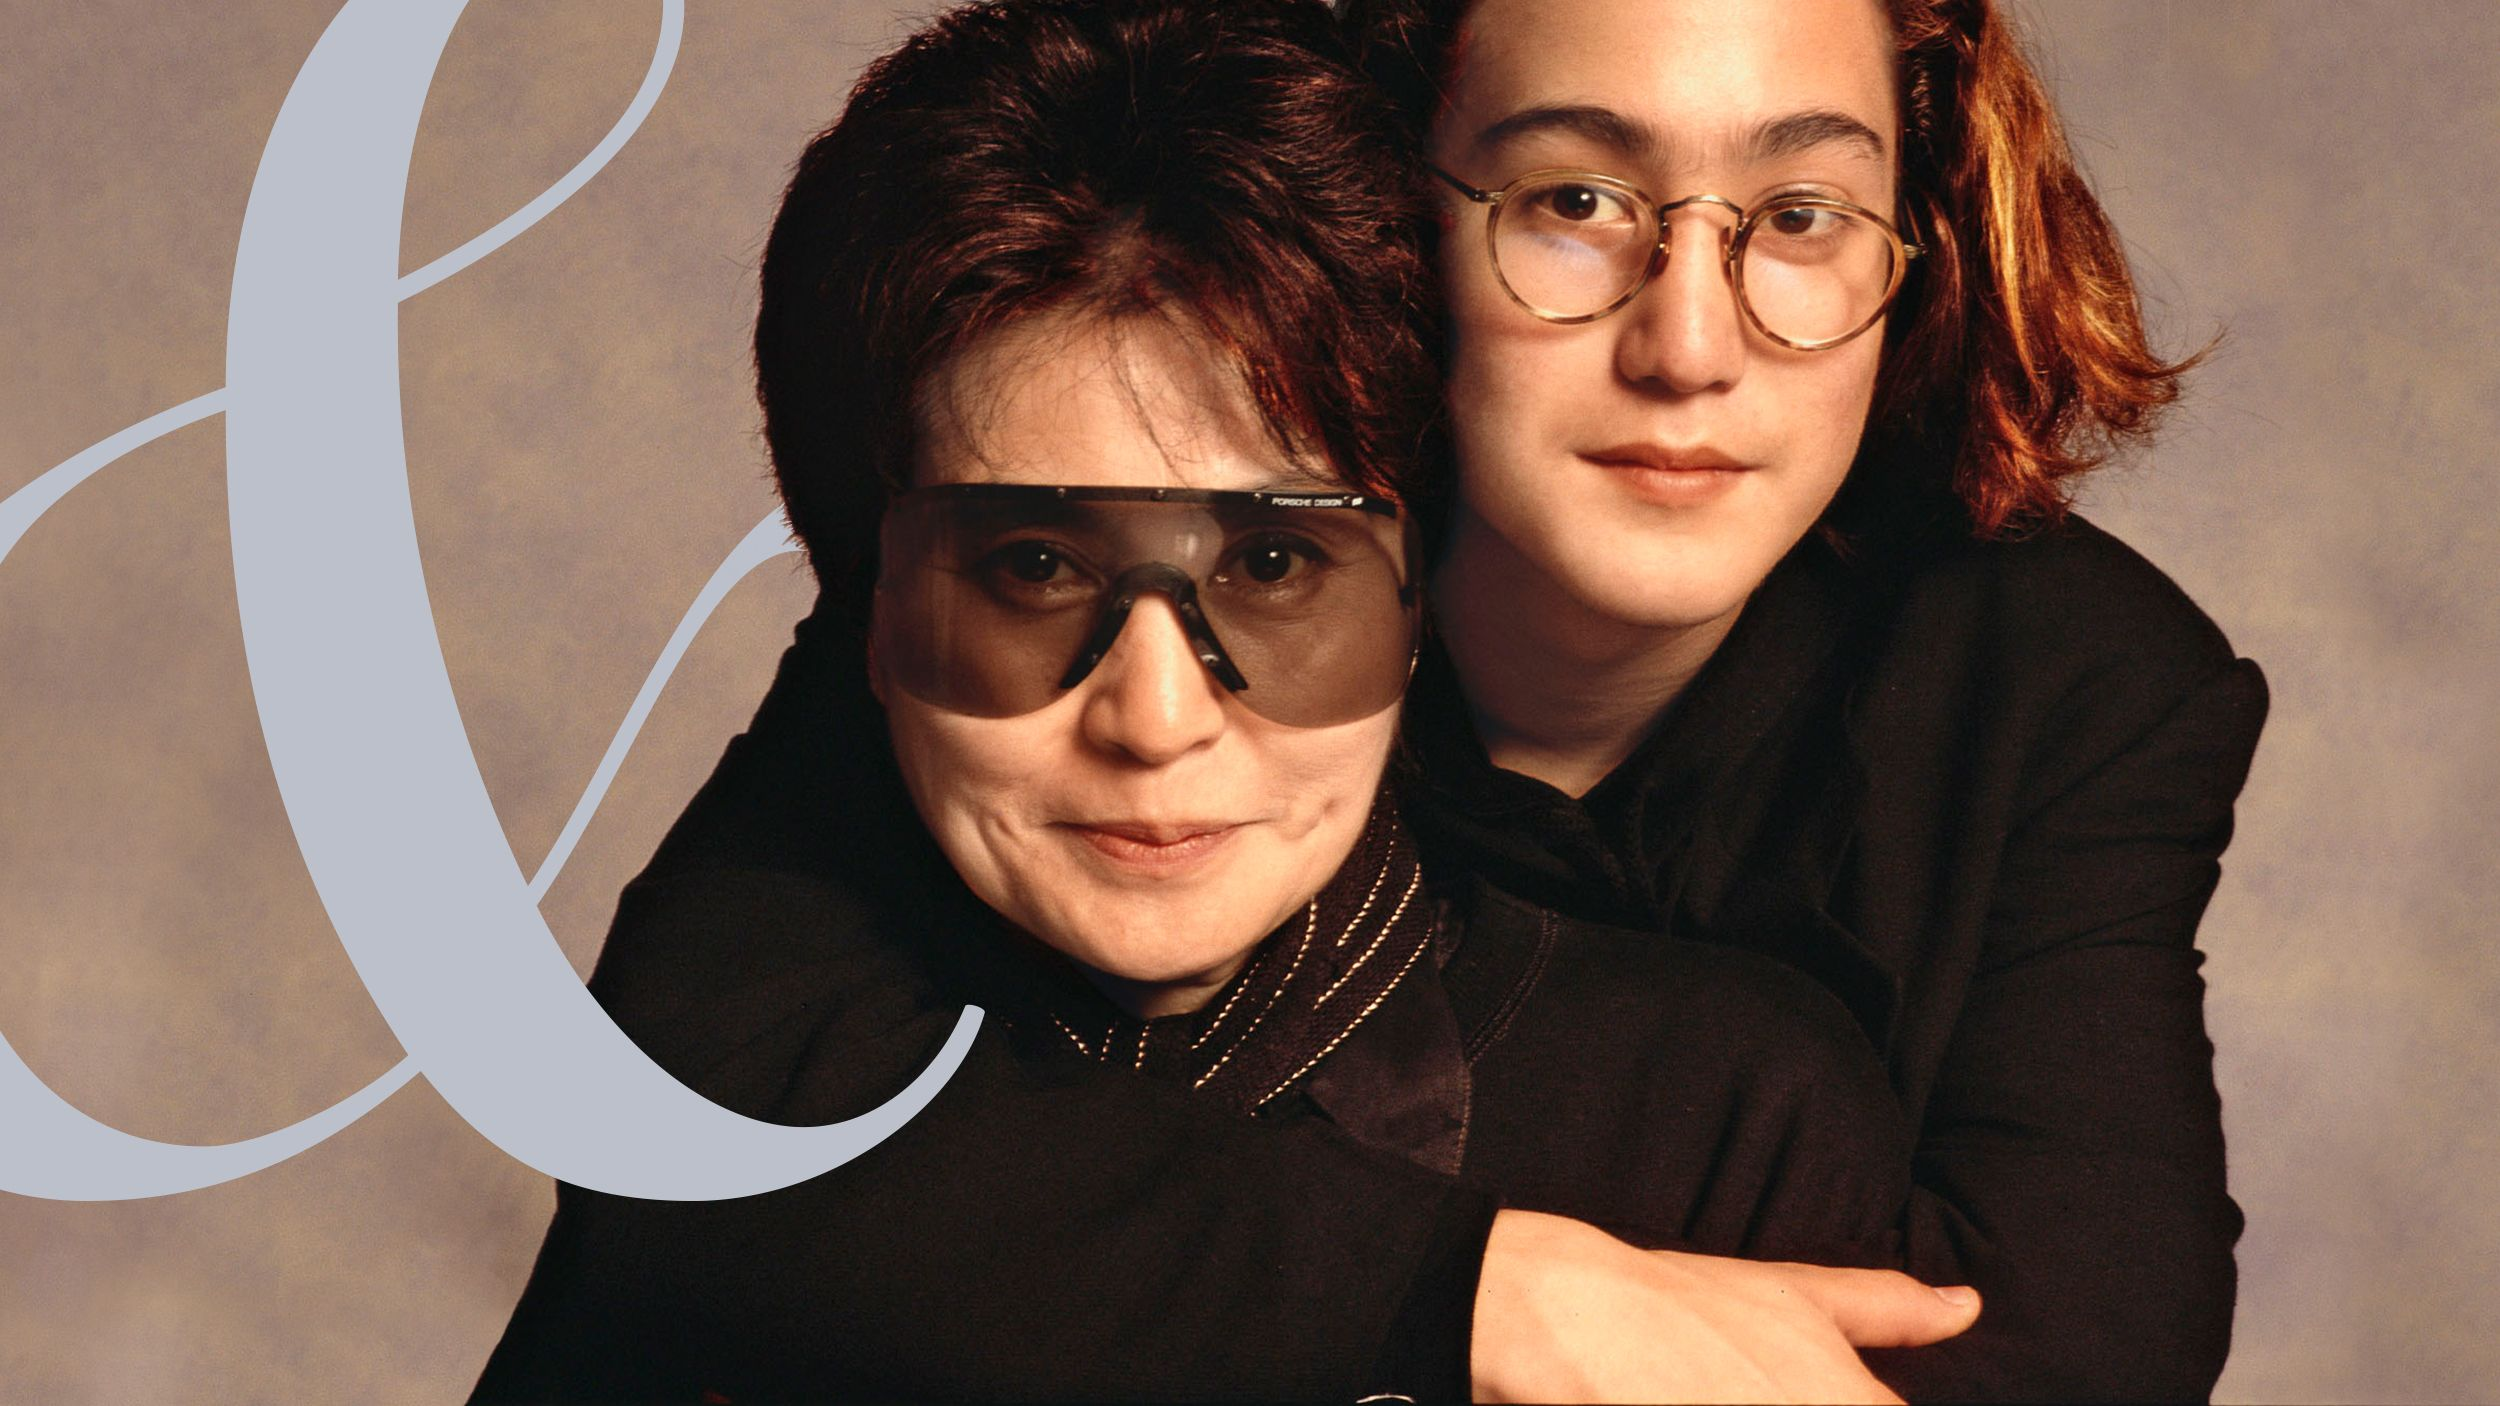 Yoko Ono And Sean Lennon Interview